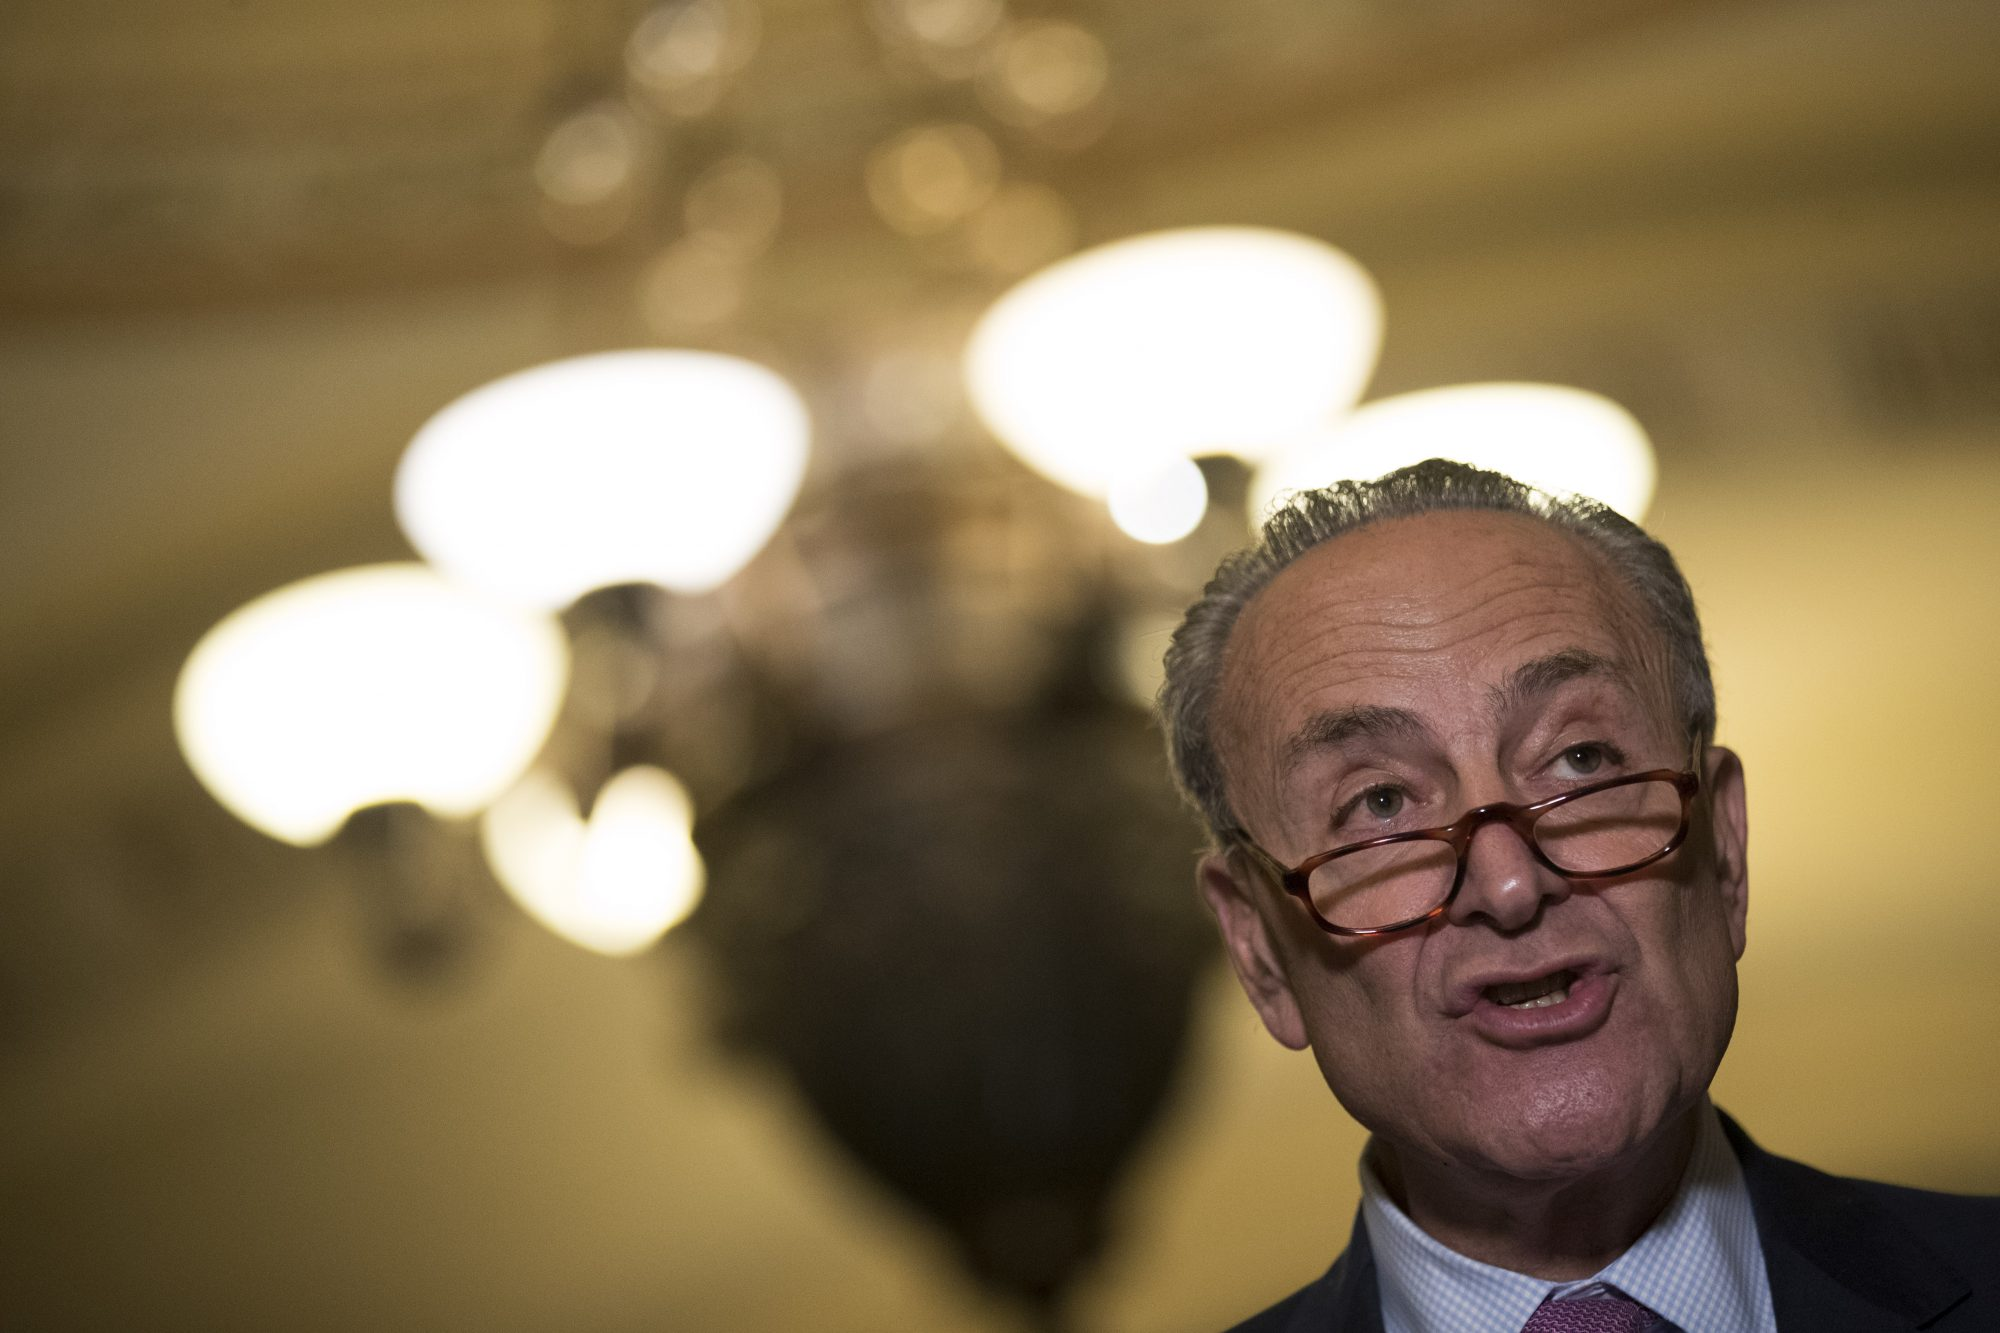 Senate Minority Leader Chuck Schumer (D-NY) speaks at a press conference following a closed-door Senate Democrat conference meeting on Capitol Hill, June 27, 2017 in Washington, DC.